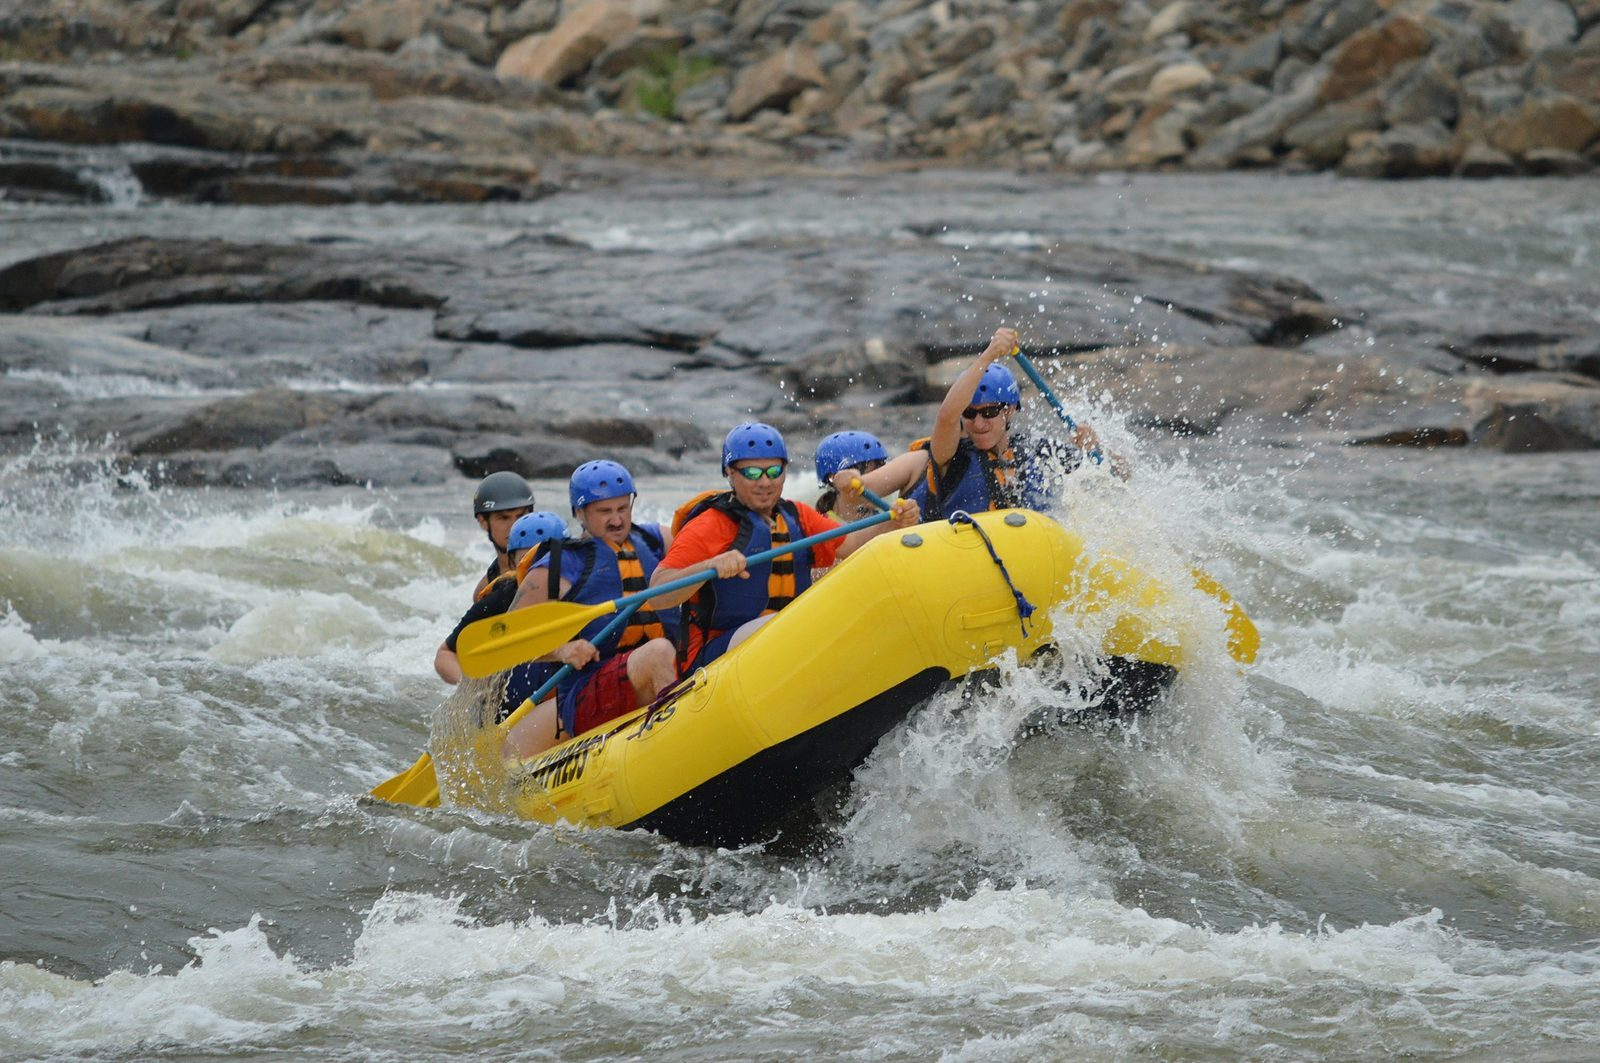 Go rafting in the Ardennes with the whole family!